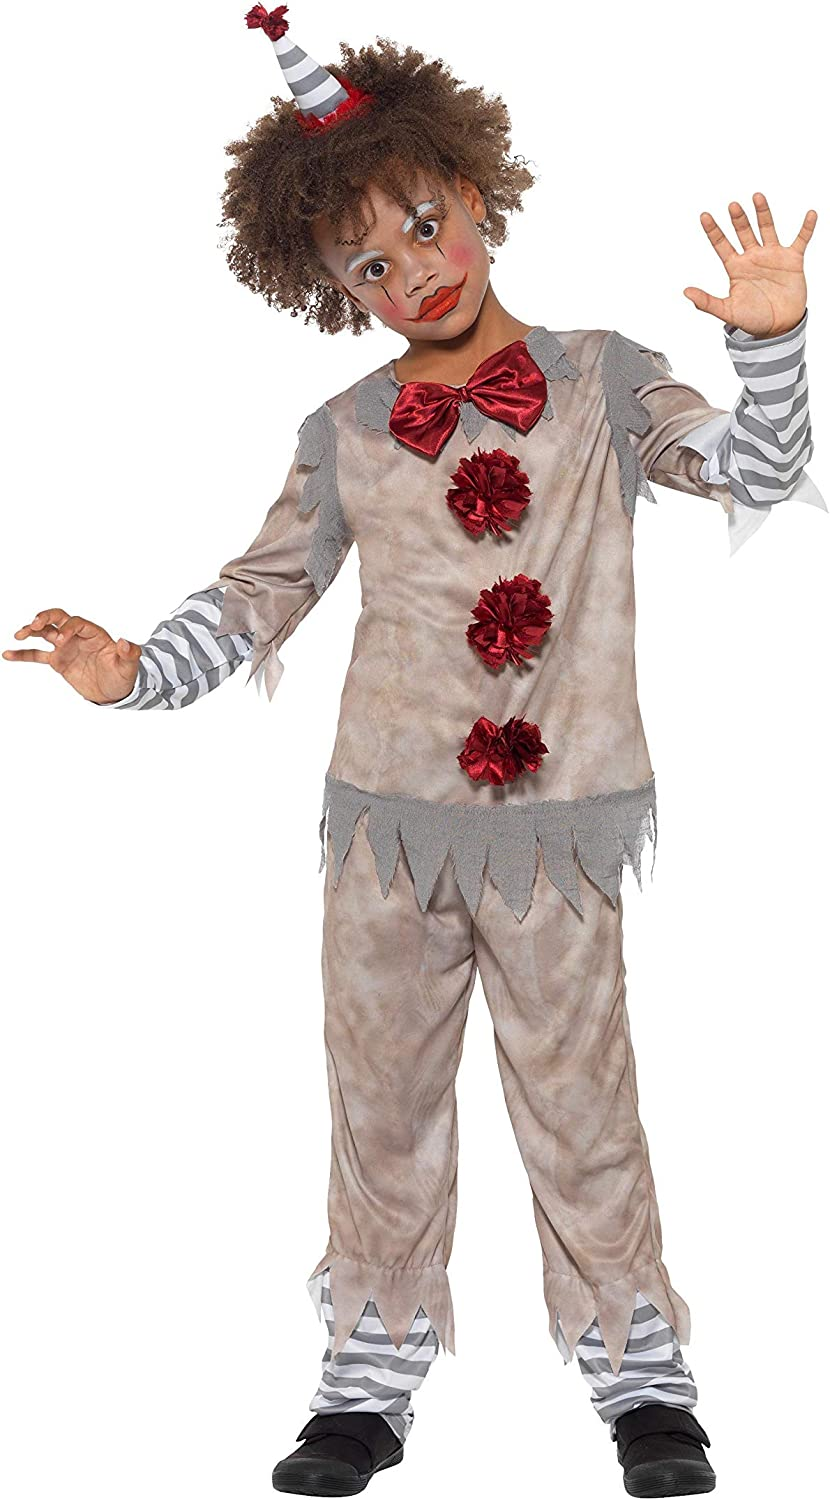 Smiffys Clown Boy Costume Disfraz de payaso vintage, color gris y ...